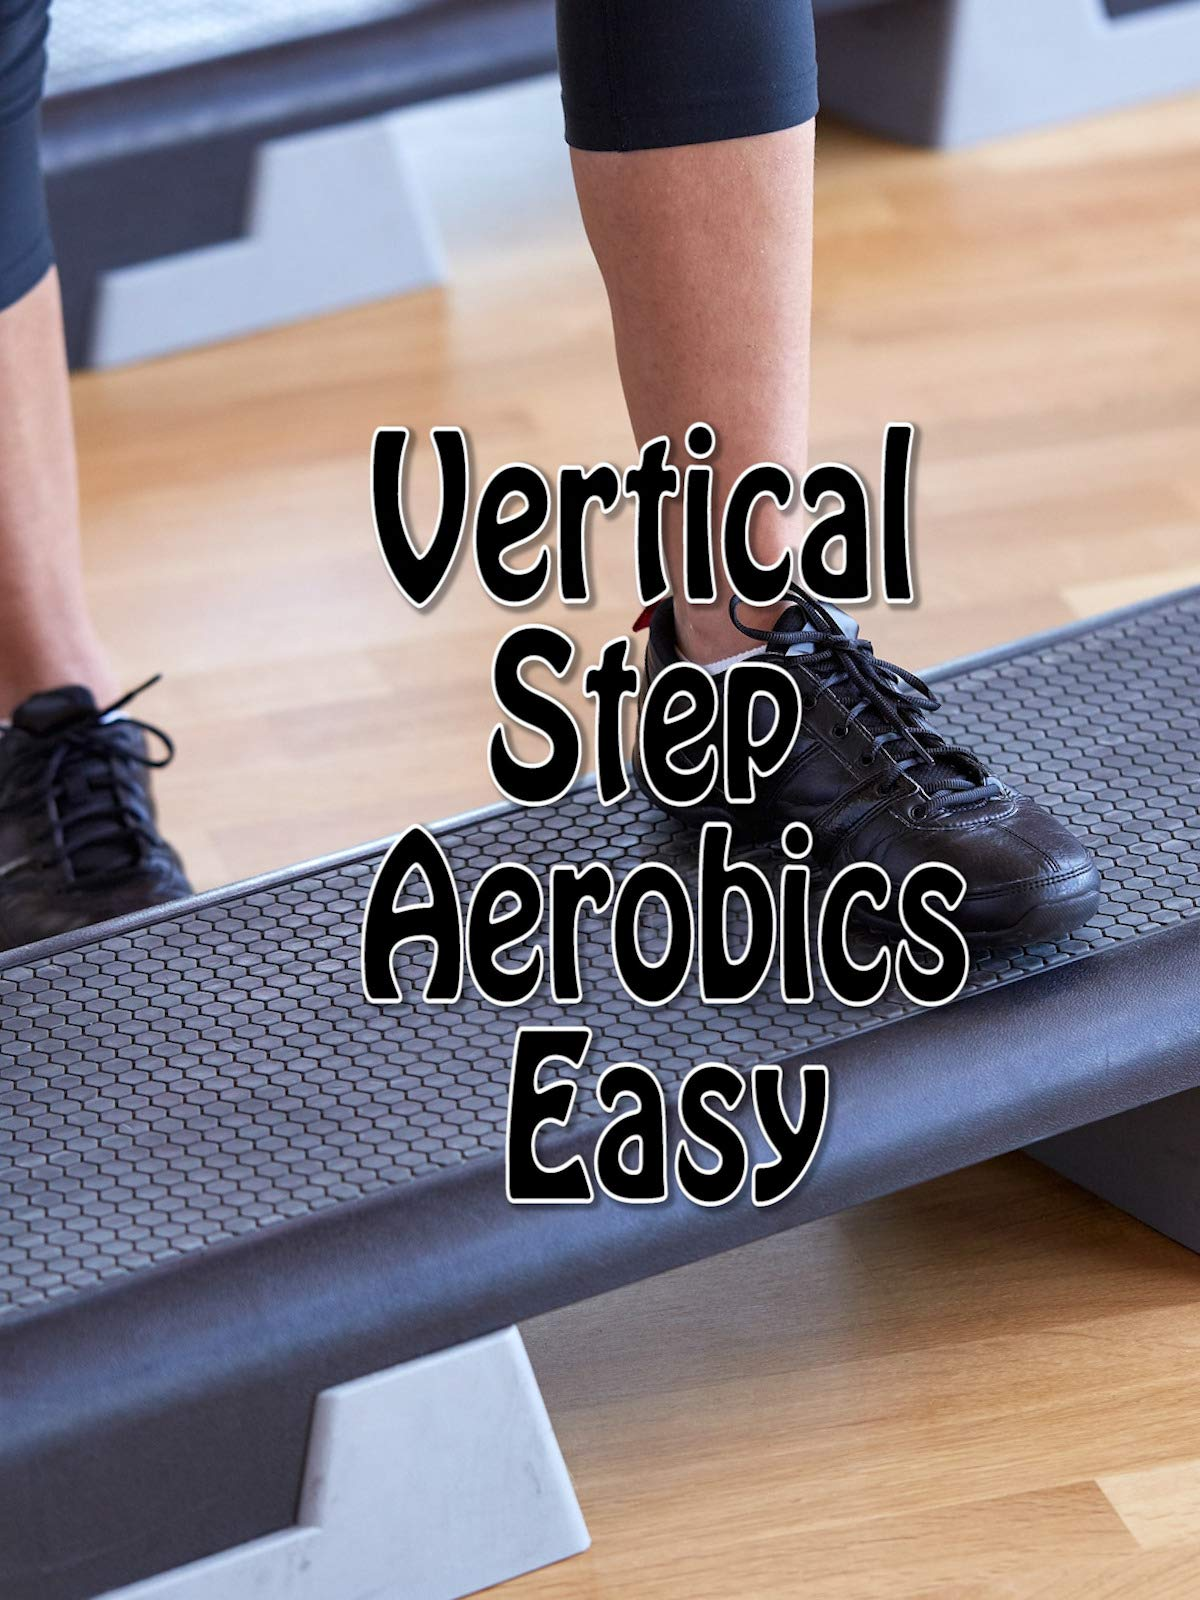 Vertical Step Aerobics Easy